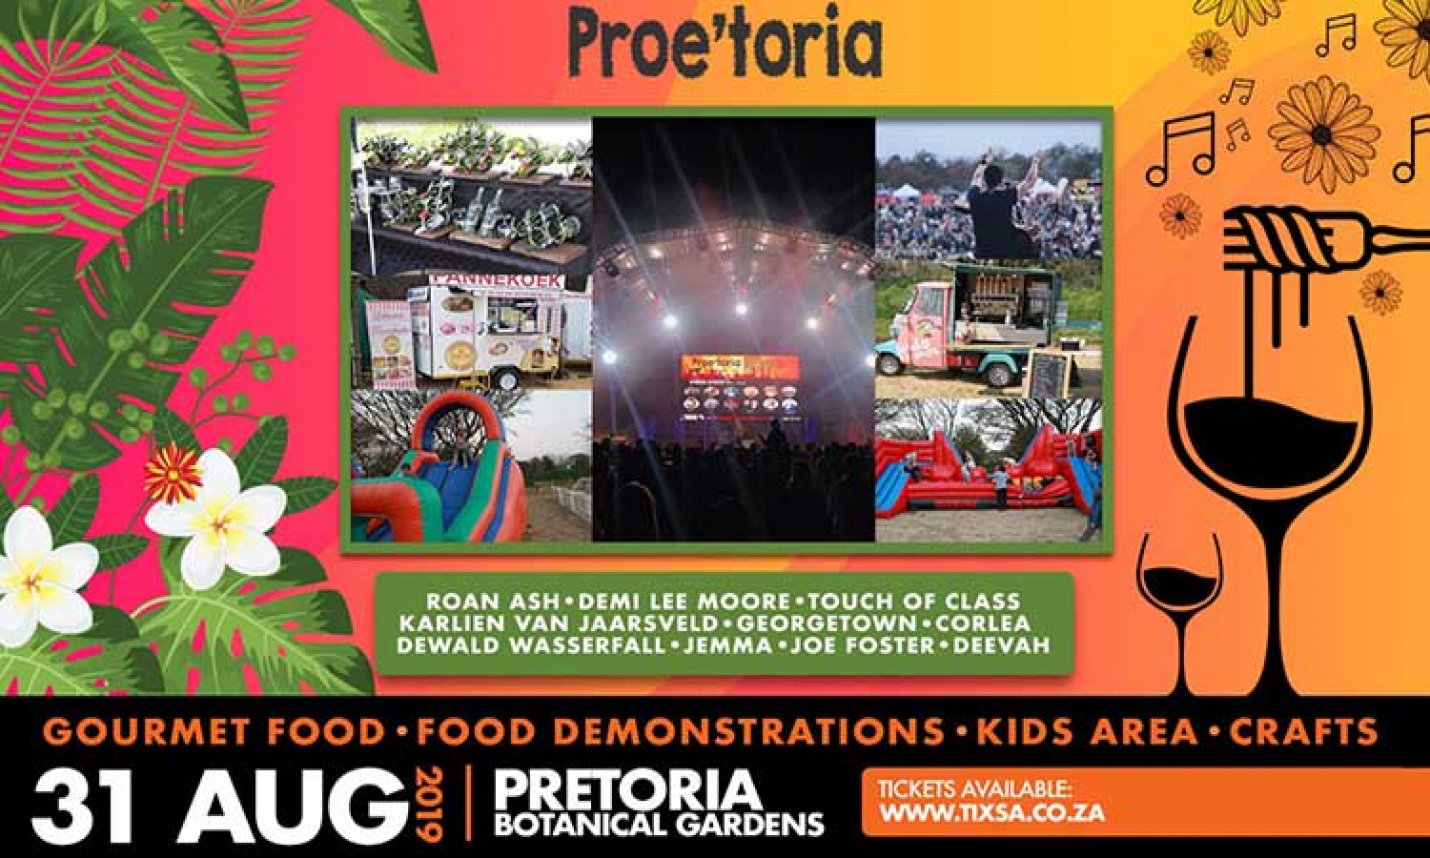 Experience Excellent Food and Wine at the 4th Proe'toria Festival